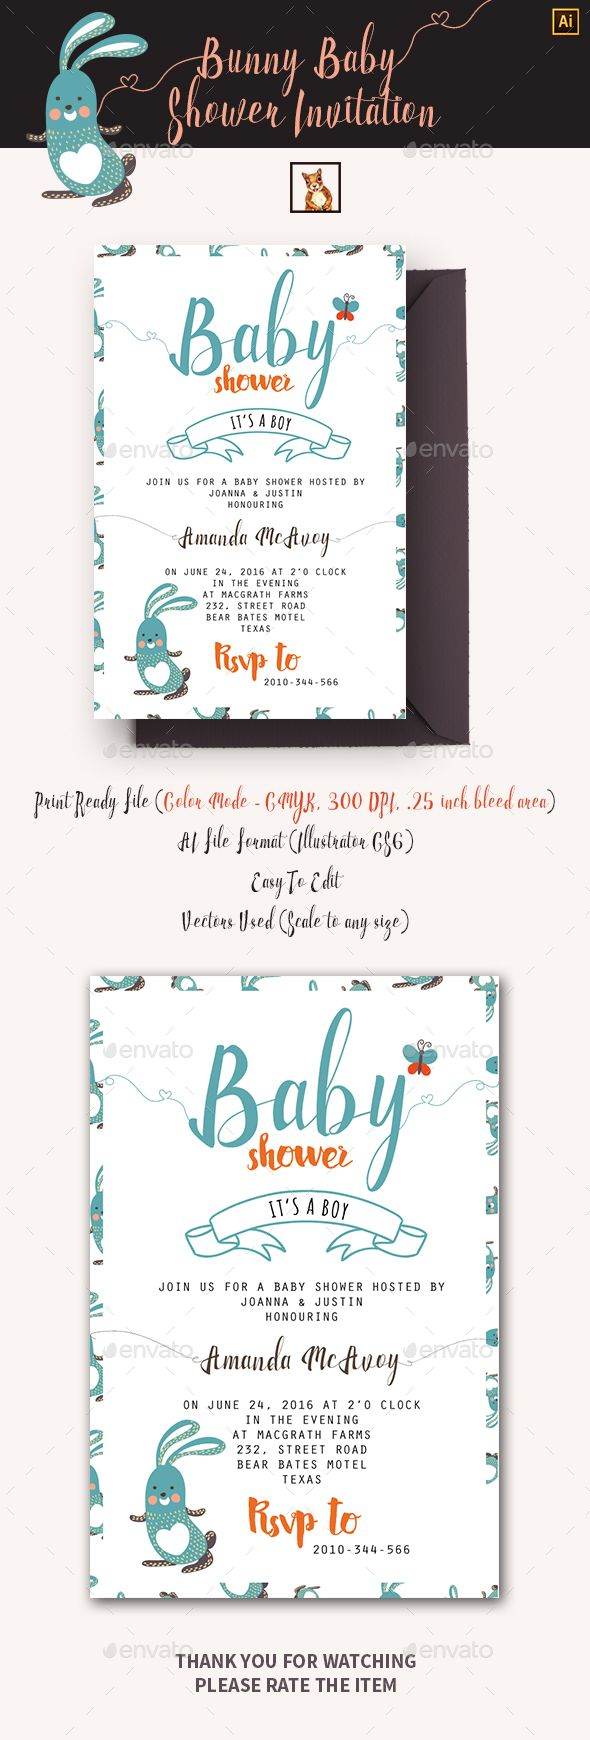 Bunny Baby Shower Invitation  Shower Invitations Bunny And Print